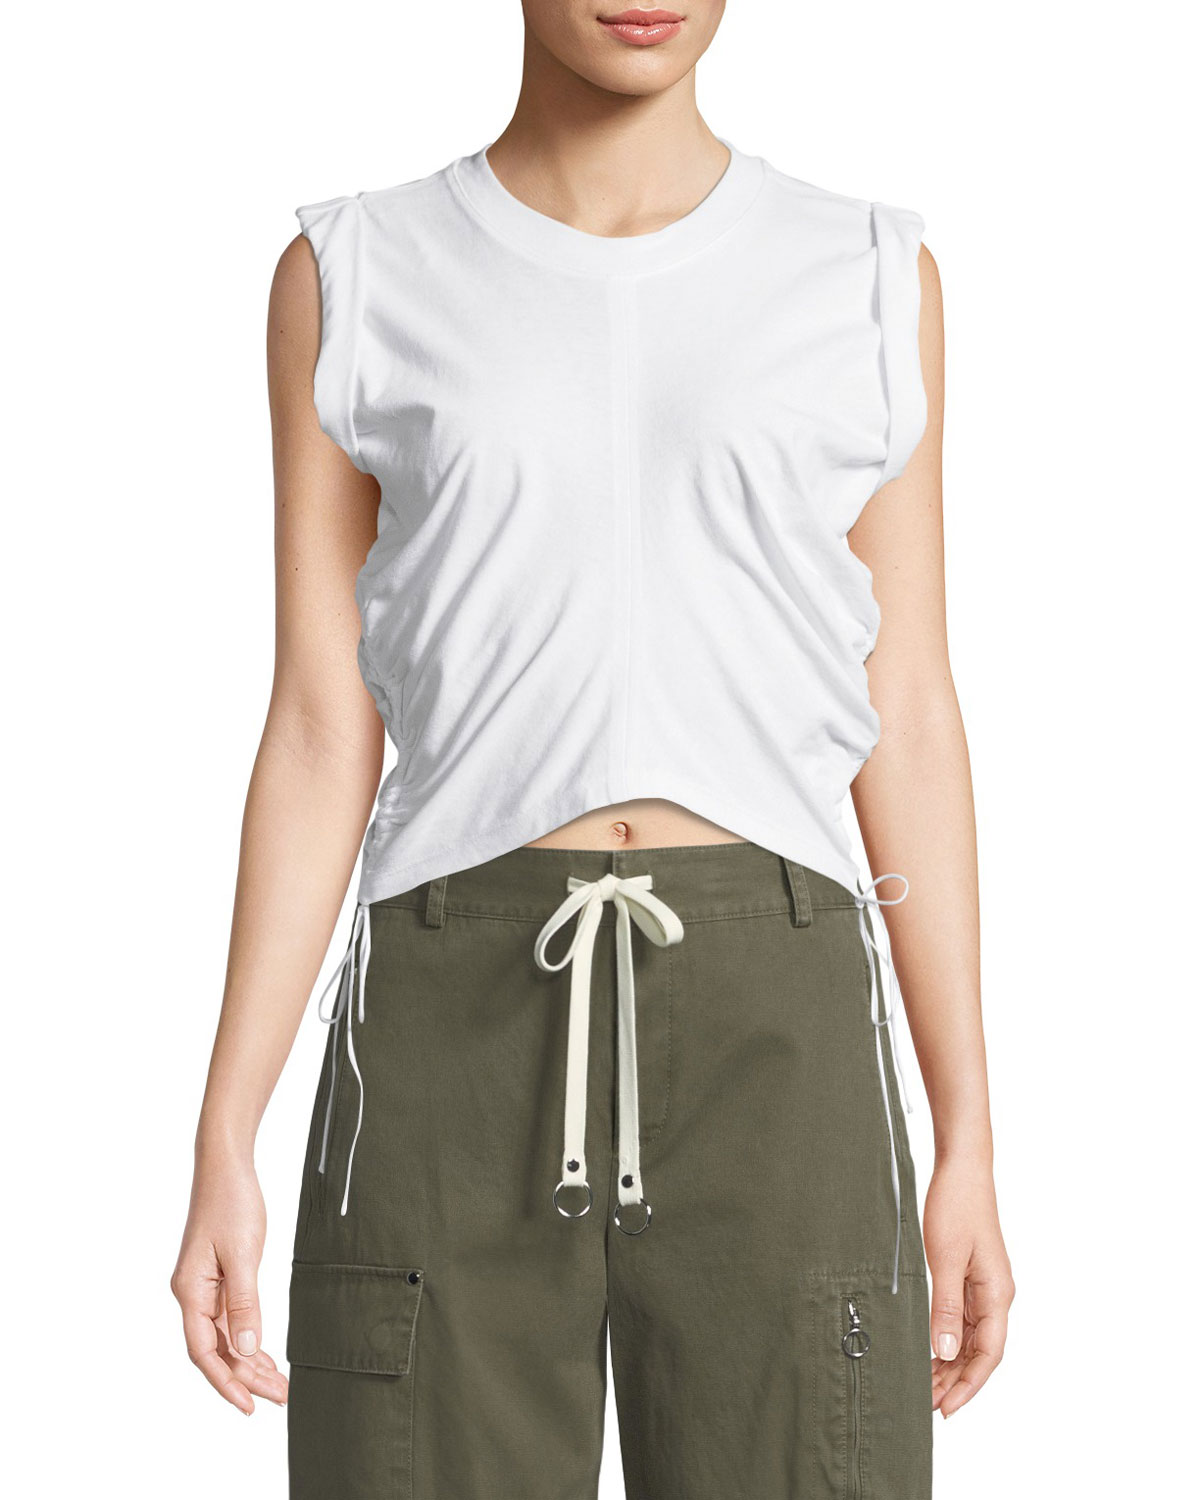 High-Twist Jersey Crop Top w/ Side Ties. Add to Favorites